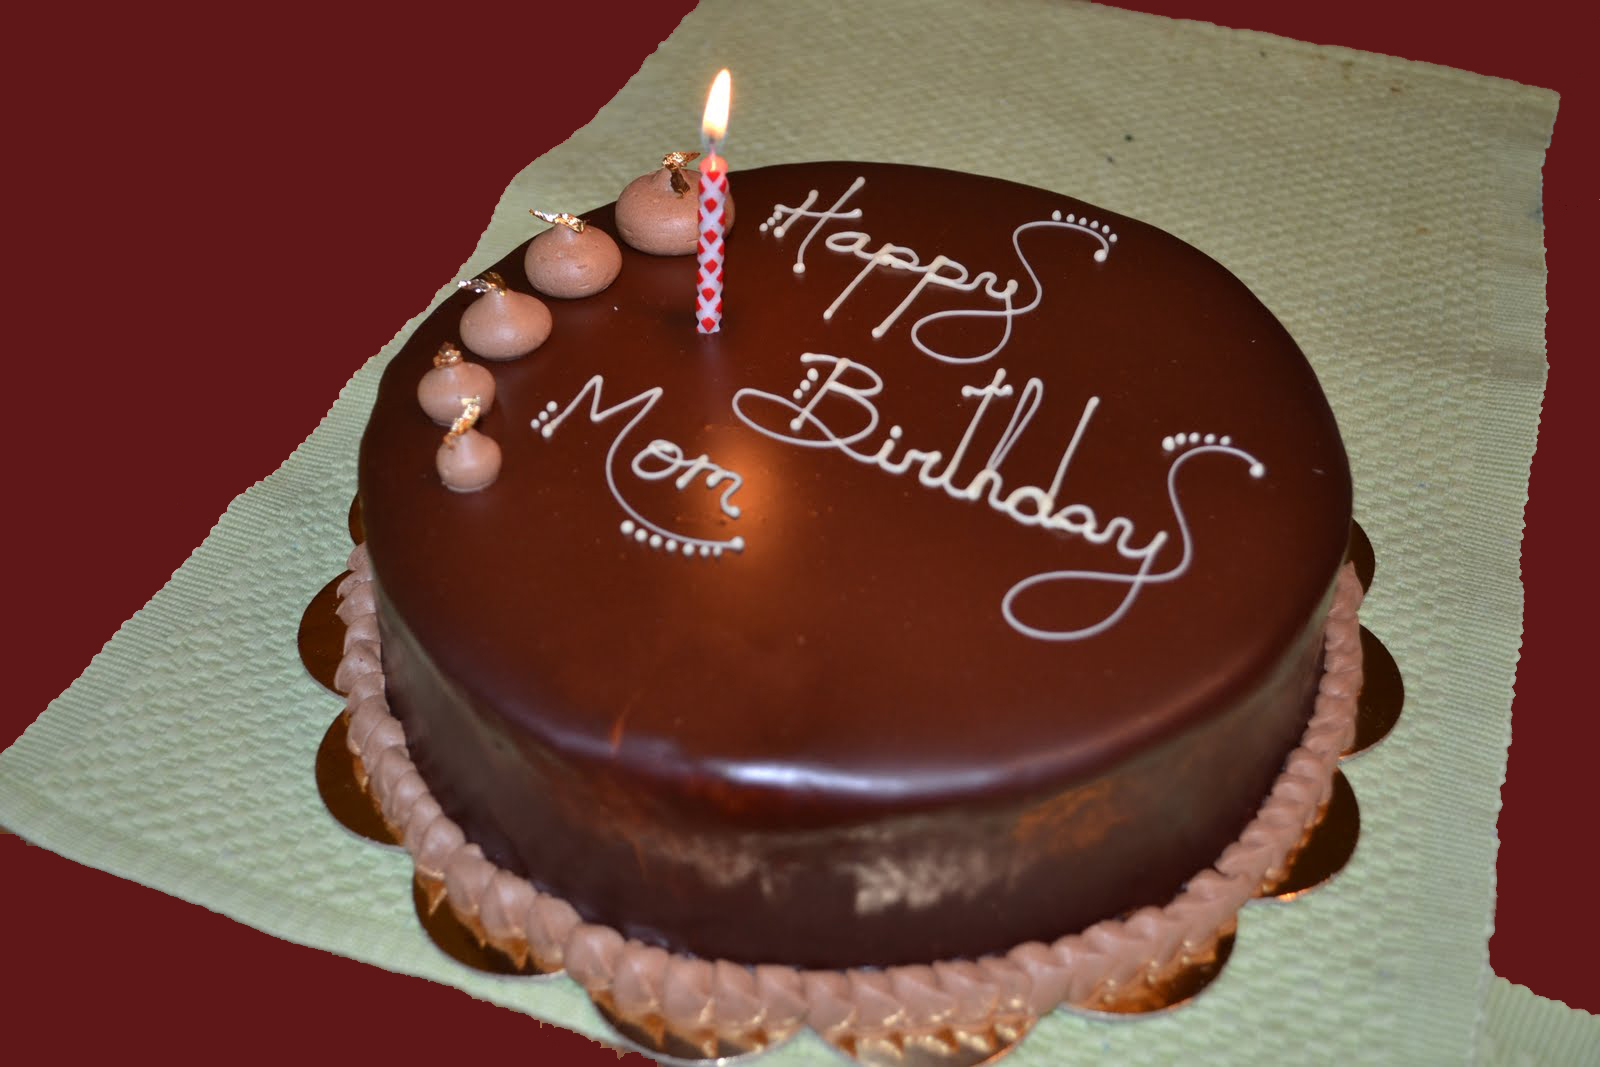 wallpaper kek birthday ; Beautiful-Happy-Birthday-Chocolate-Cake-Images-6